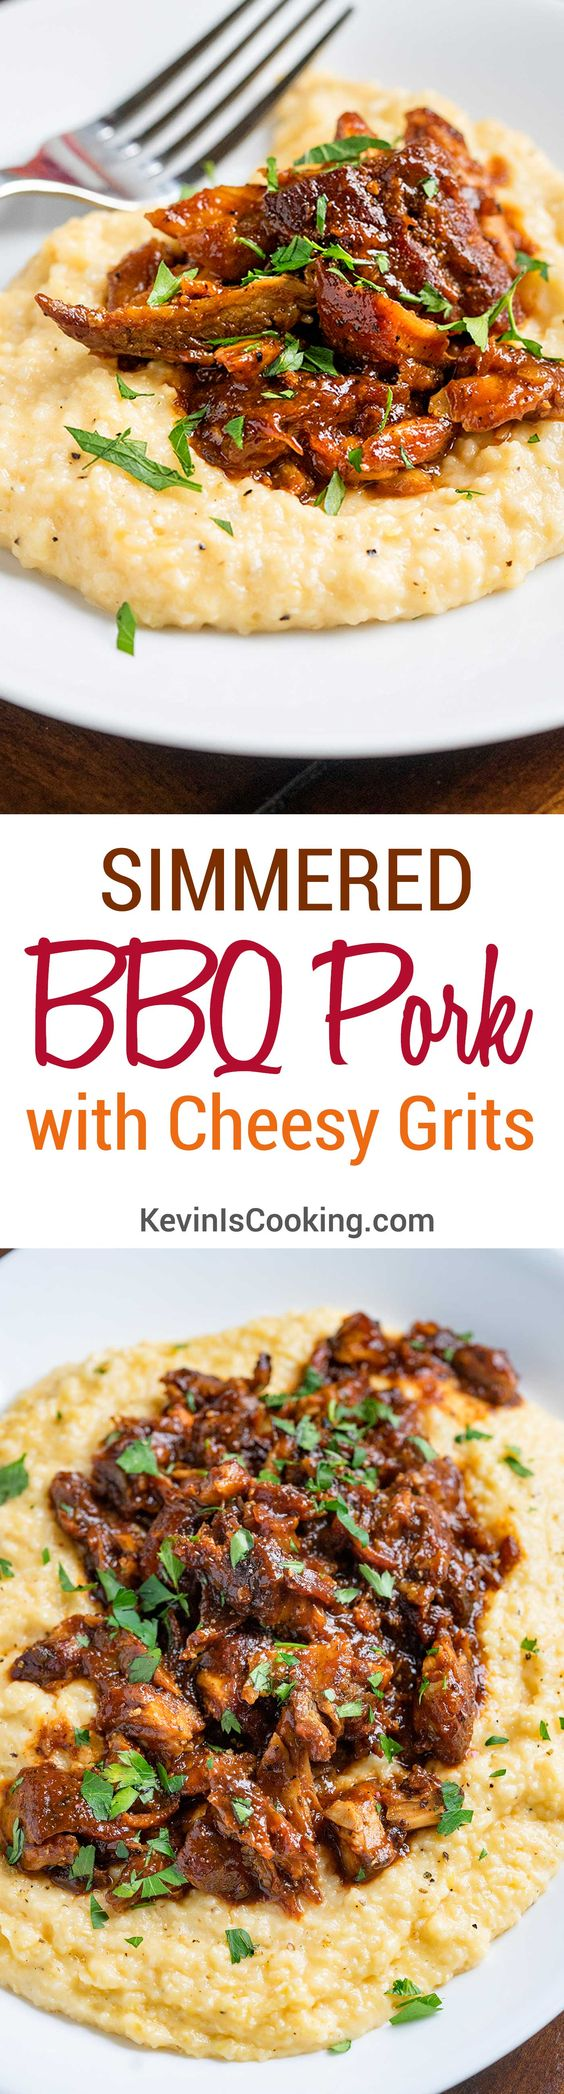 BBQ Pork with Cheesy Grits. www.keviniscooking.com